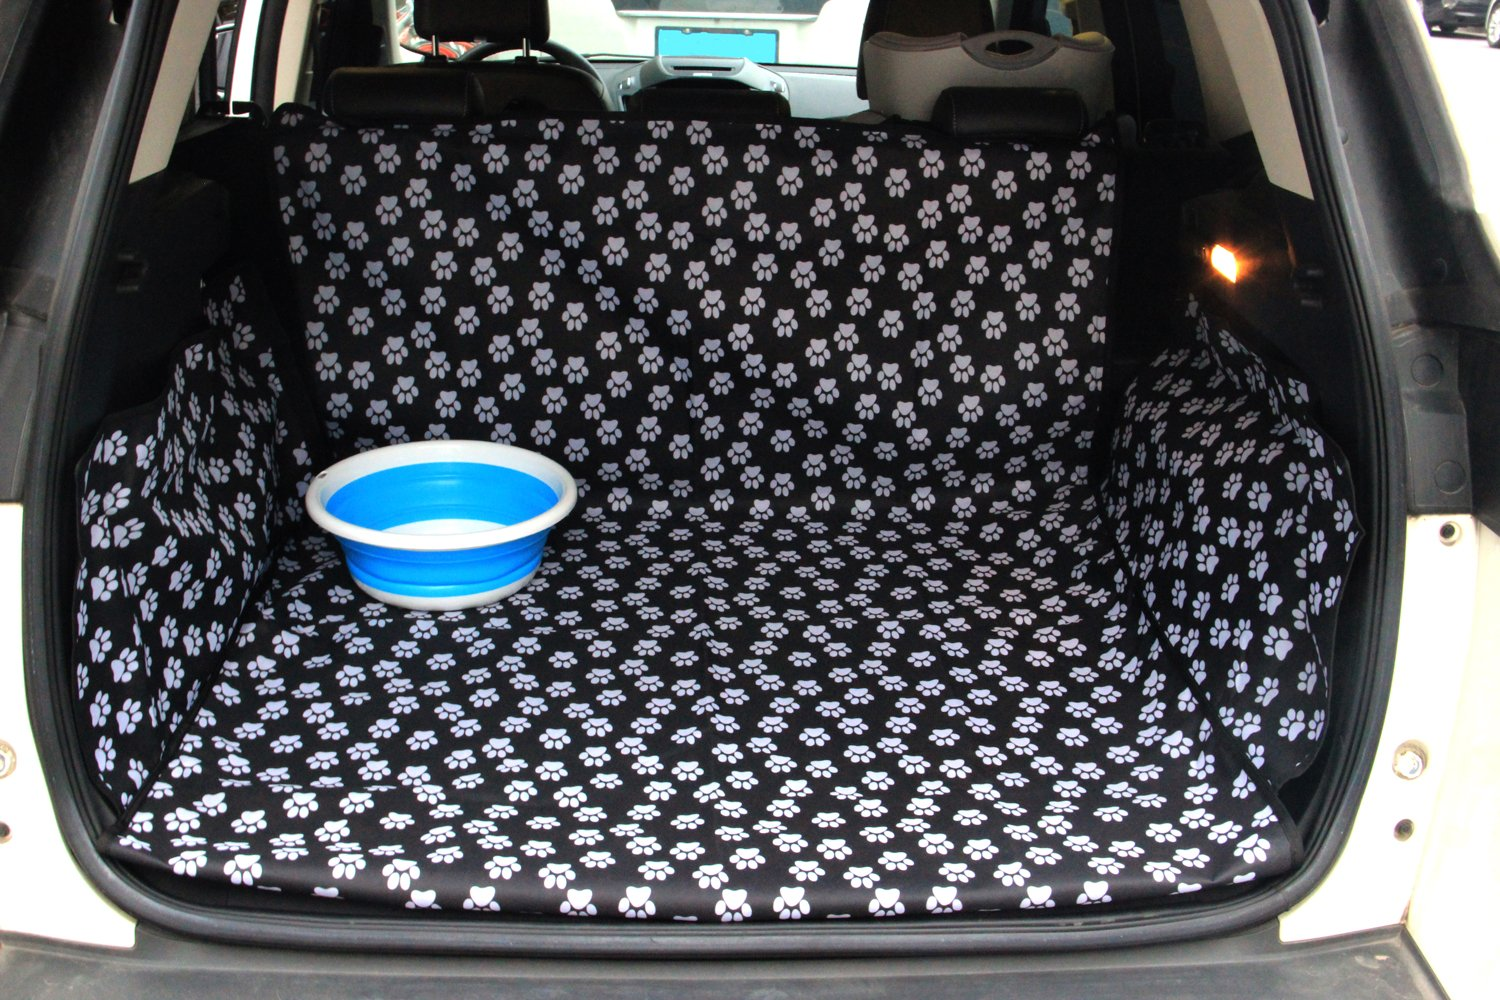 Oxford Trunk Liner - Car SUV Van Cargo Cover - Waterproof Floor Mat for Dogs Cats